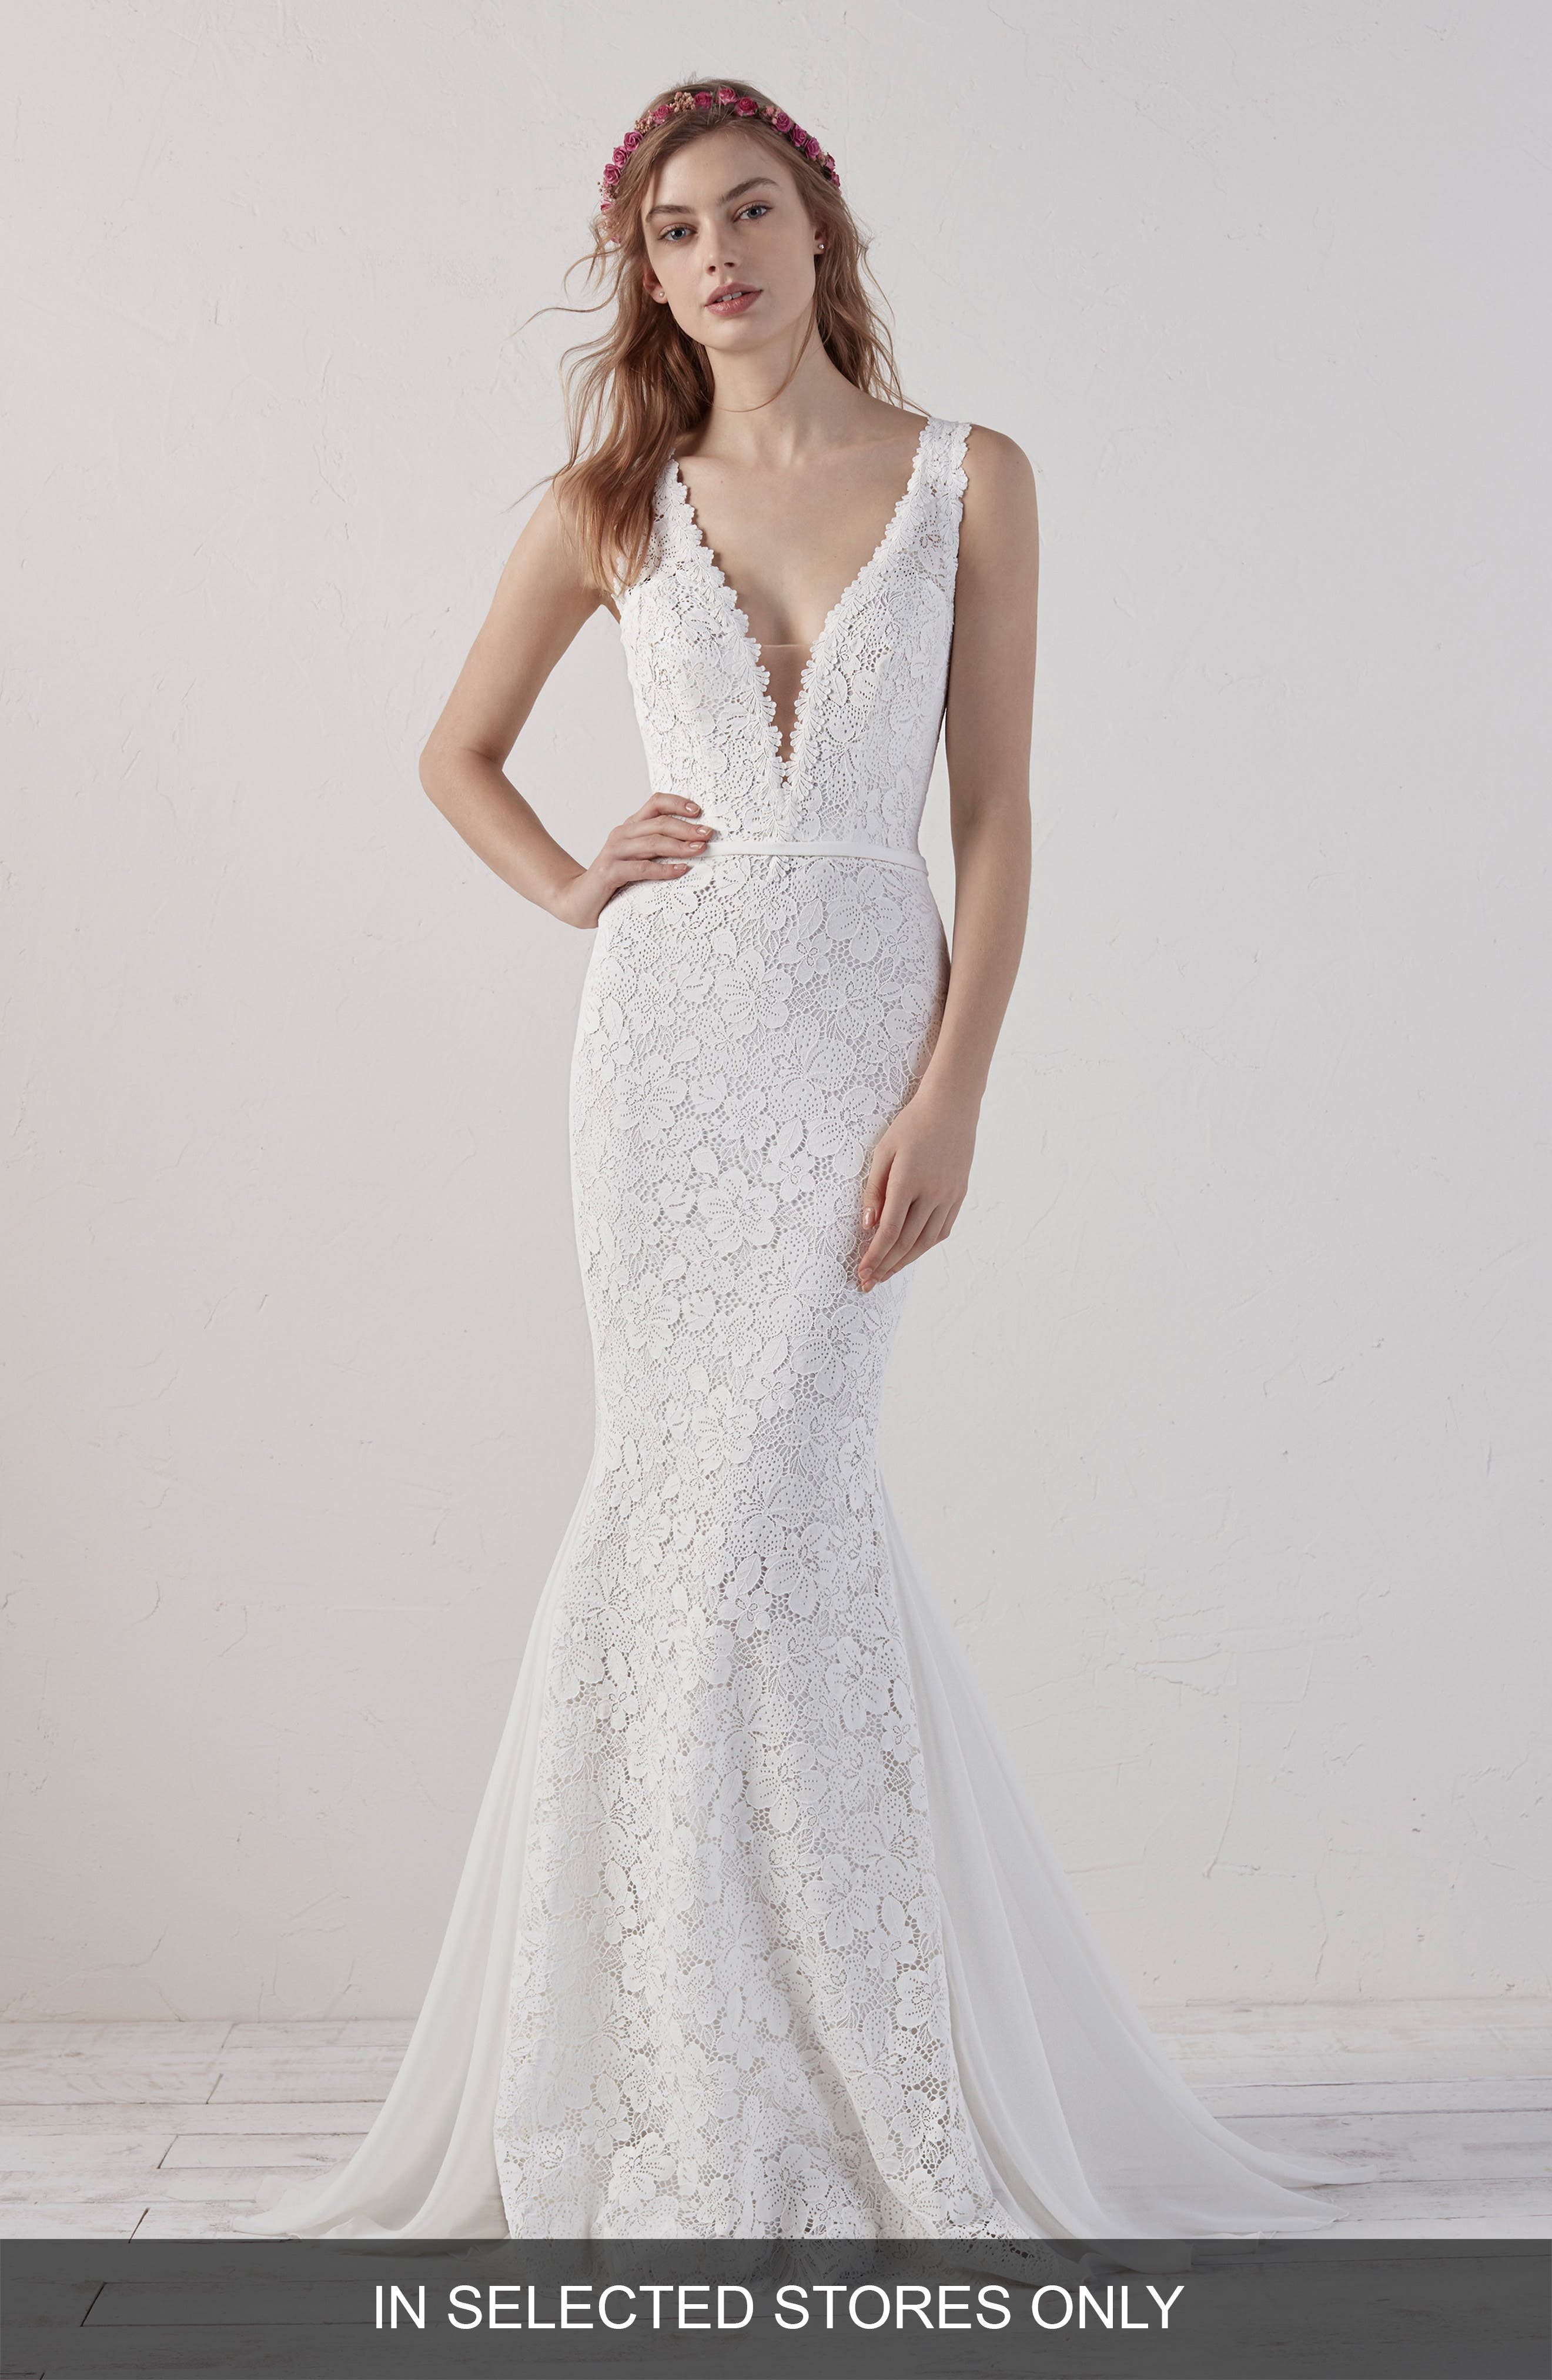 Eladia Lace Mermaid Gown,                             Main thumbnail 1, color,                             OFF WHITE/ CRST